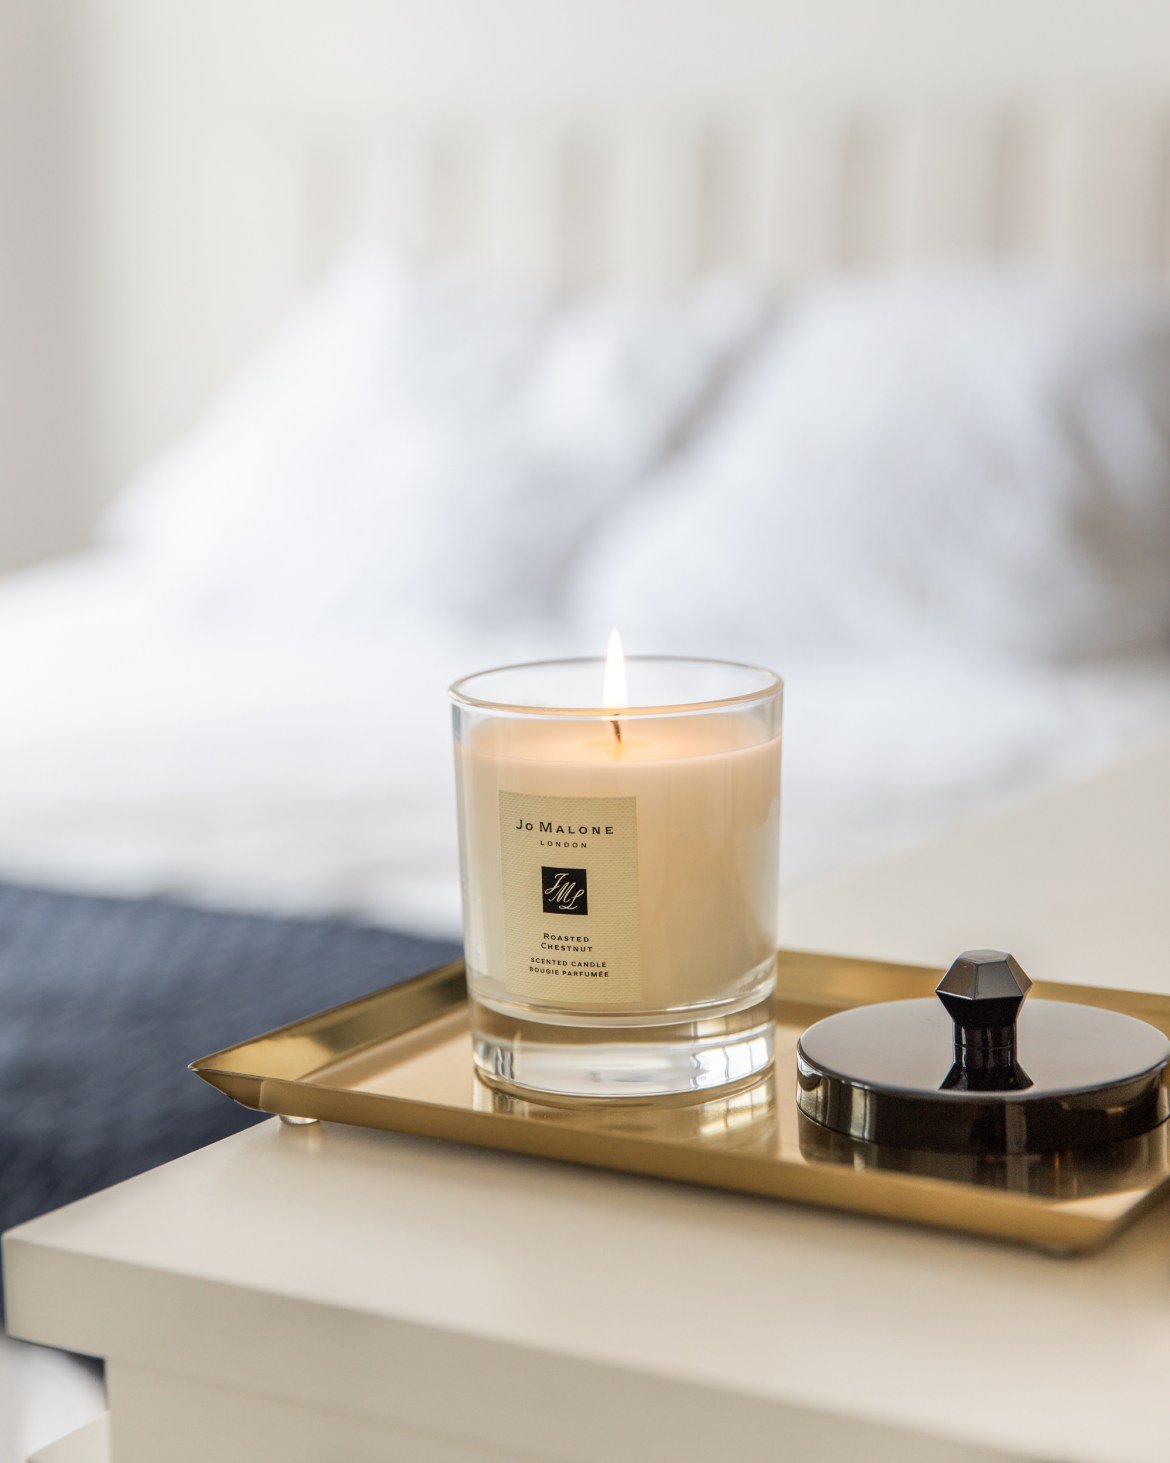 Jo Malone London candle at home